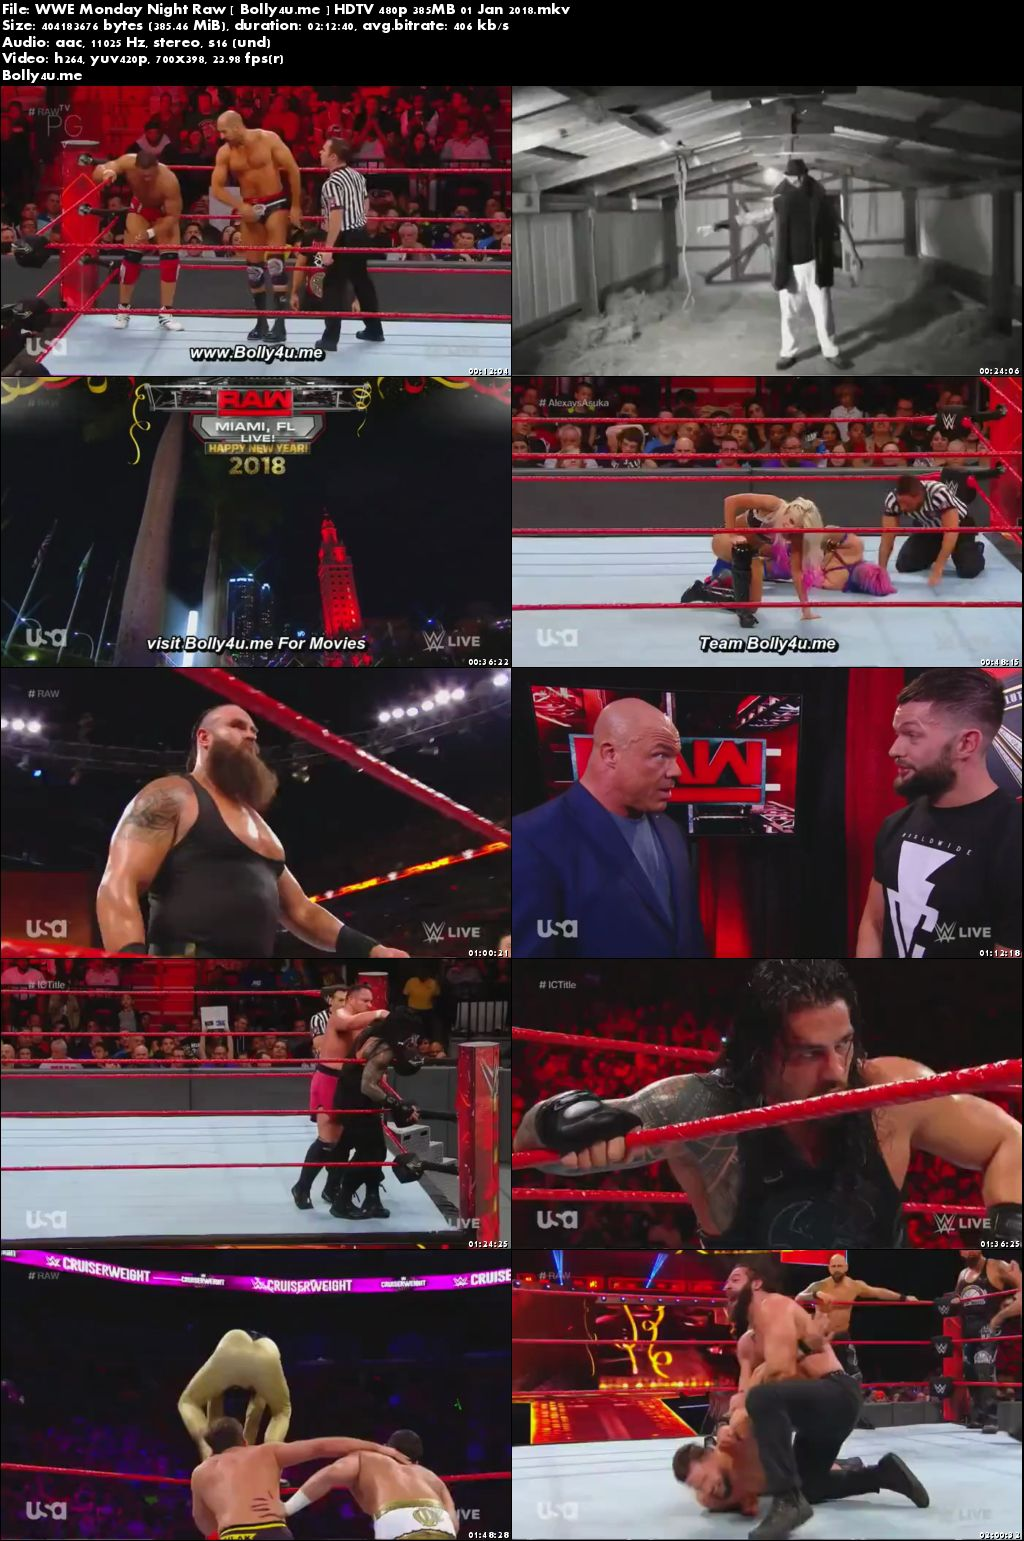 WWE Monday Night Raw HDTV 480p 350MB 01 Jan 2018 Download